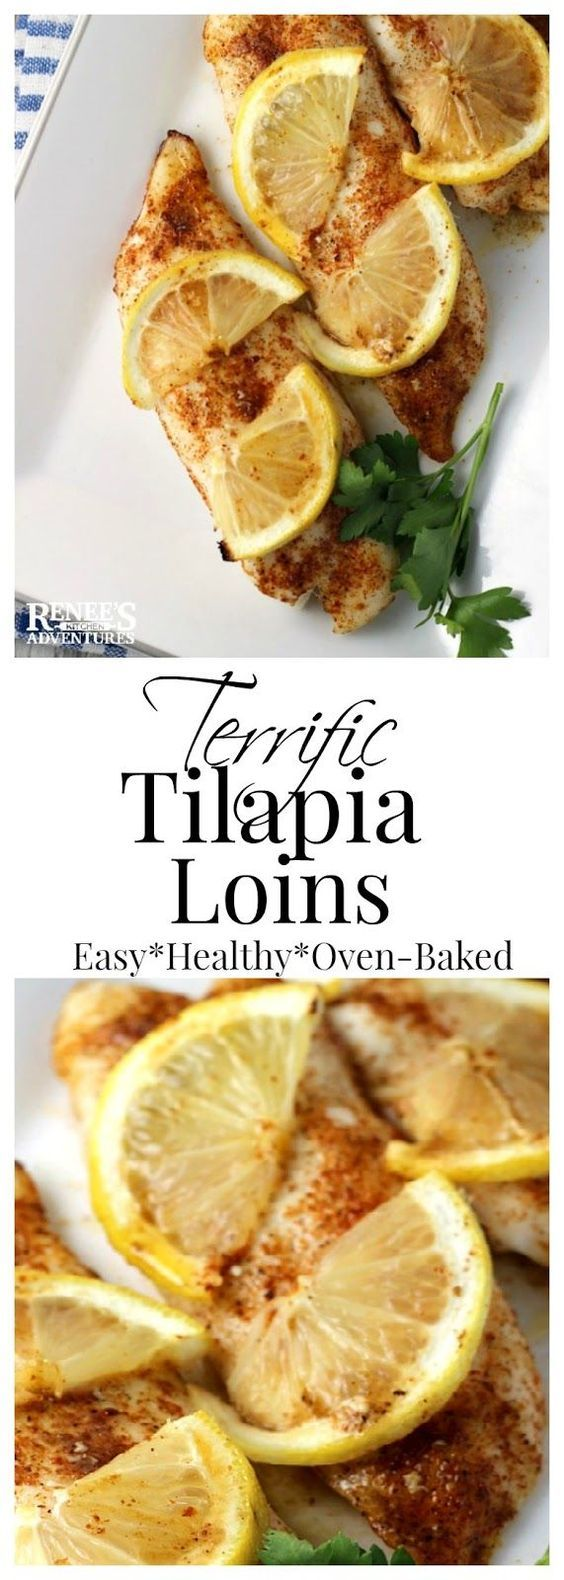 Terrific Tilapia Loins   Renee's Kitchen Adventures - easy baked recipe for tilapia fish with lemon butter and creole seasonings that's cooked from frozen. Dinner ready in about 30 minutes!